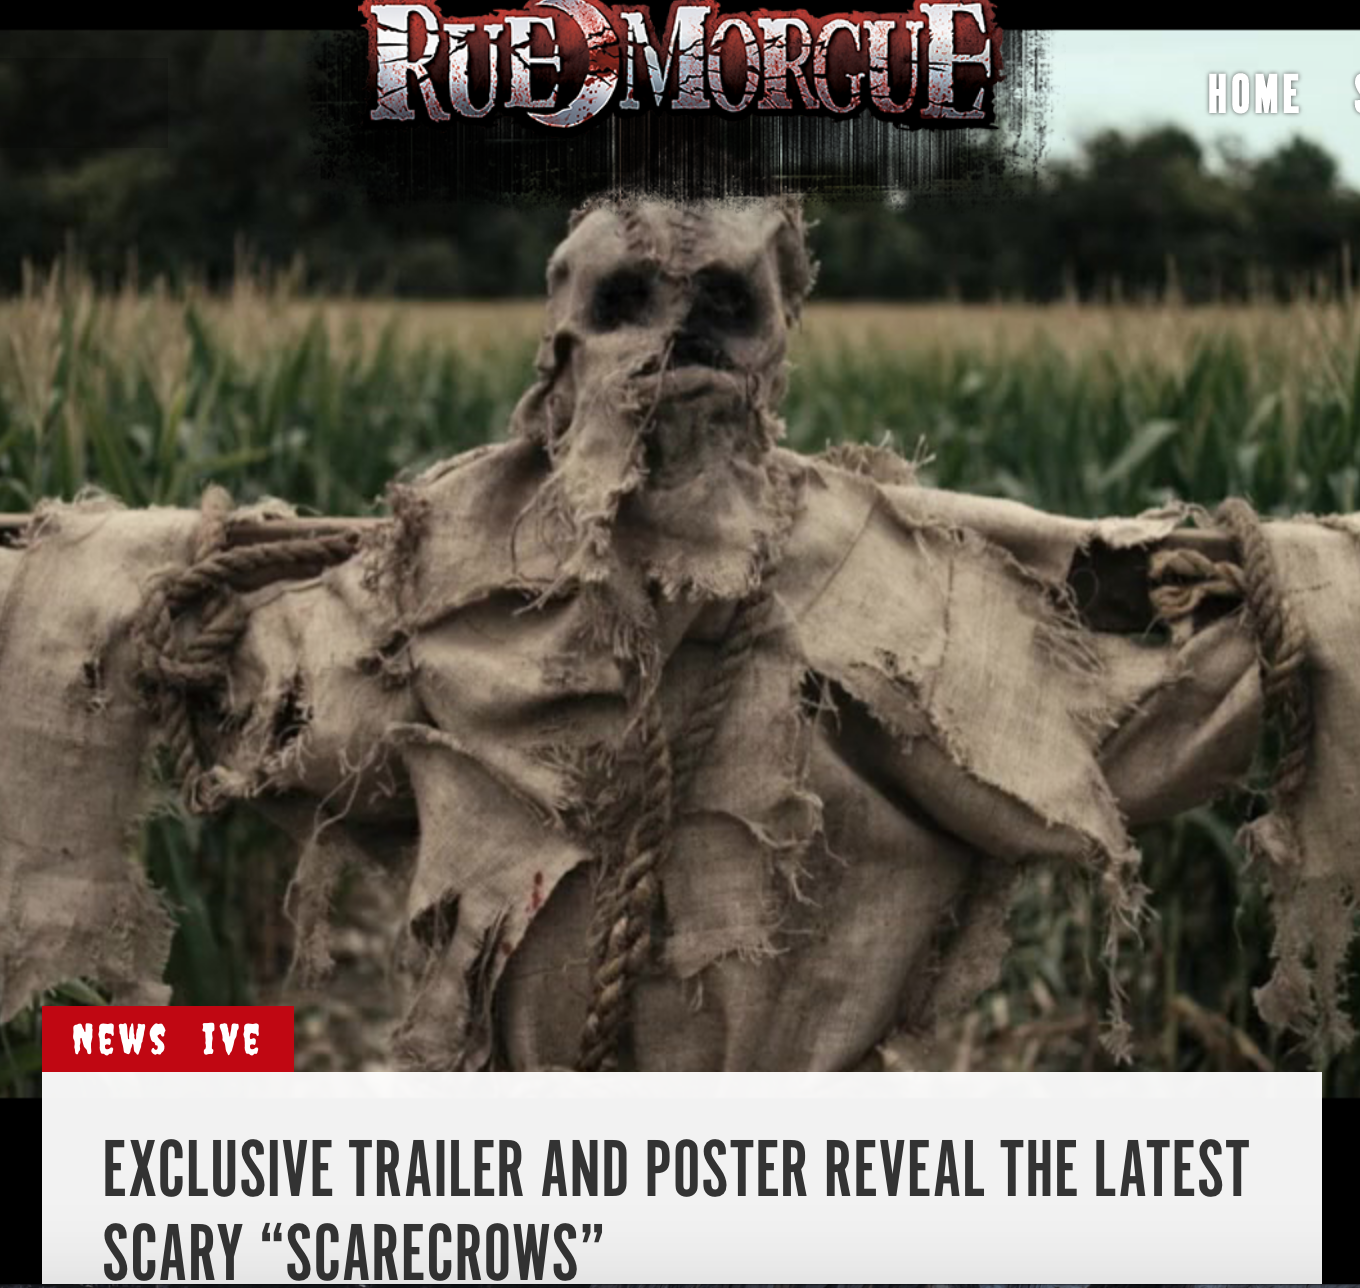 USA RELEASE NEWS !!! READ AND WATCH HERE https://www.rue-morgue.com/exclusive-trailer-and-poster-reveal-the-latest-scary-scarecrows/